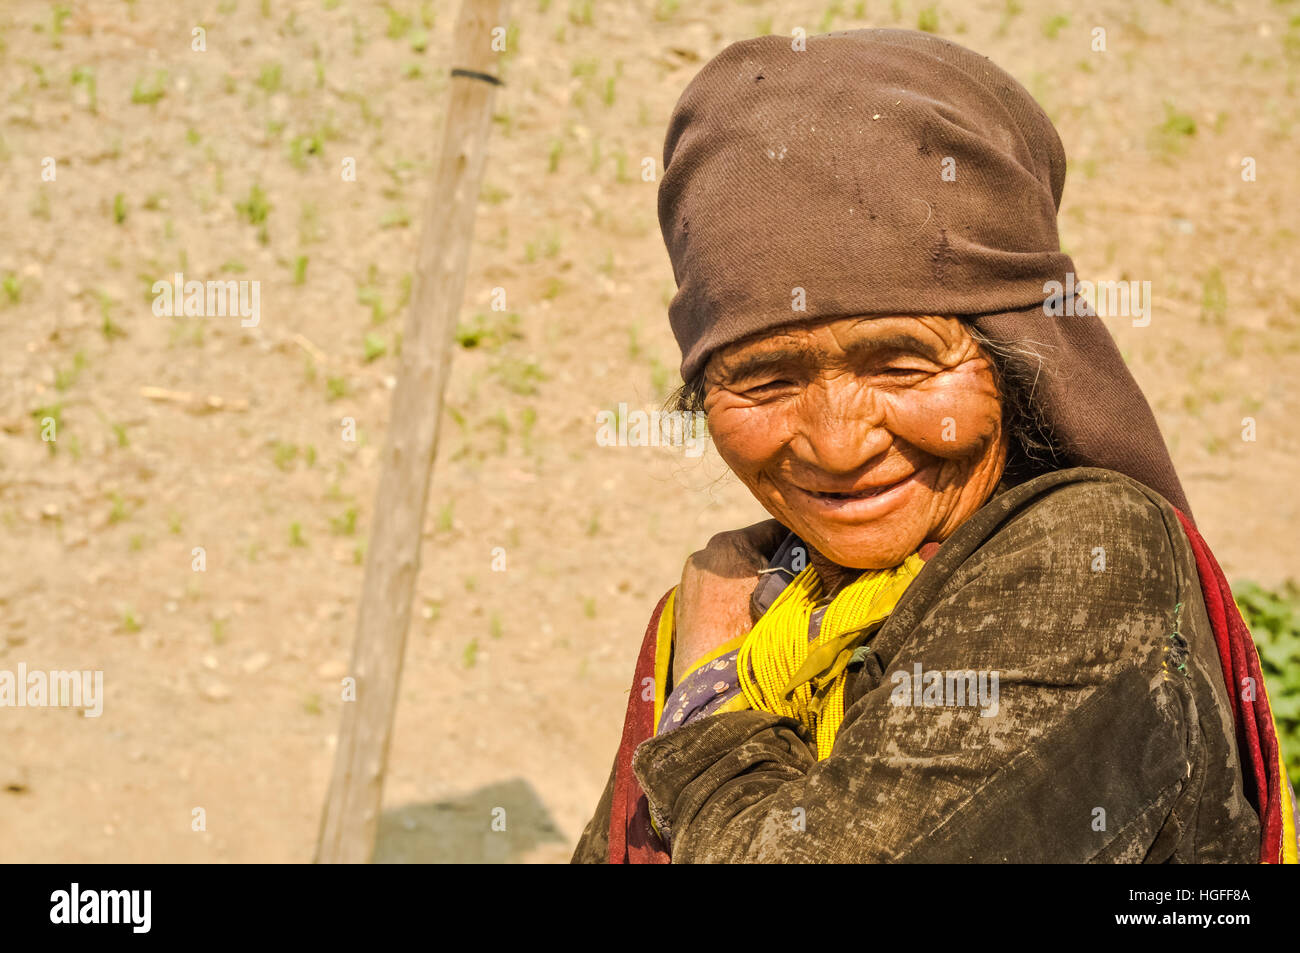 Dolpo, Nepal - circa May 2012: Old native woman with wrinkled face and brown headcloth looks down and smiles nicely - Stock Image